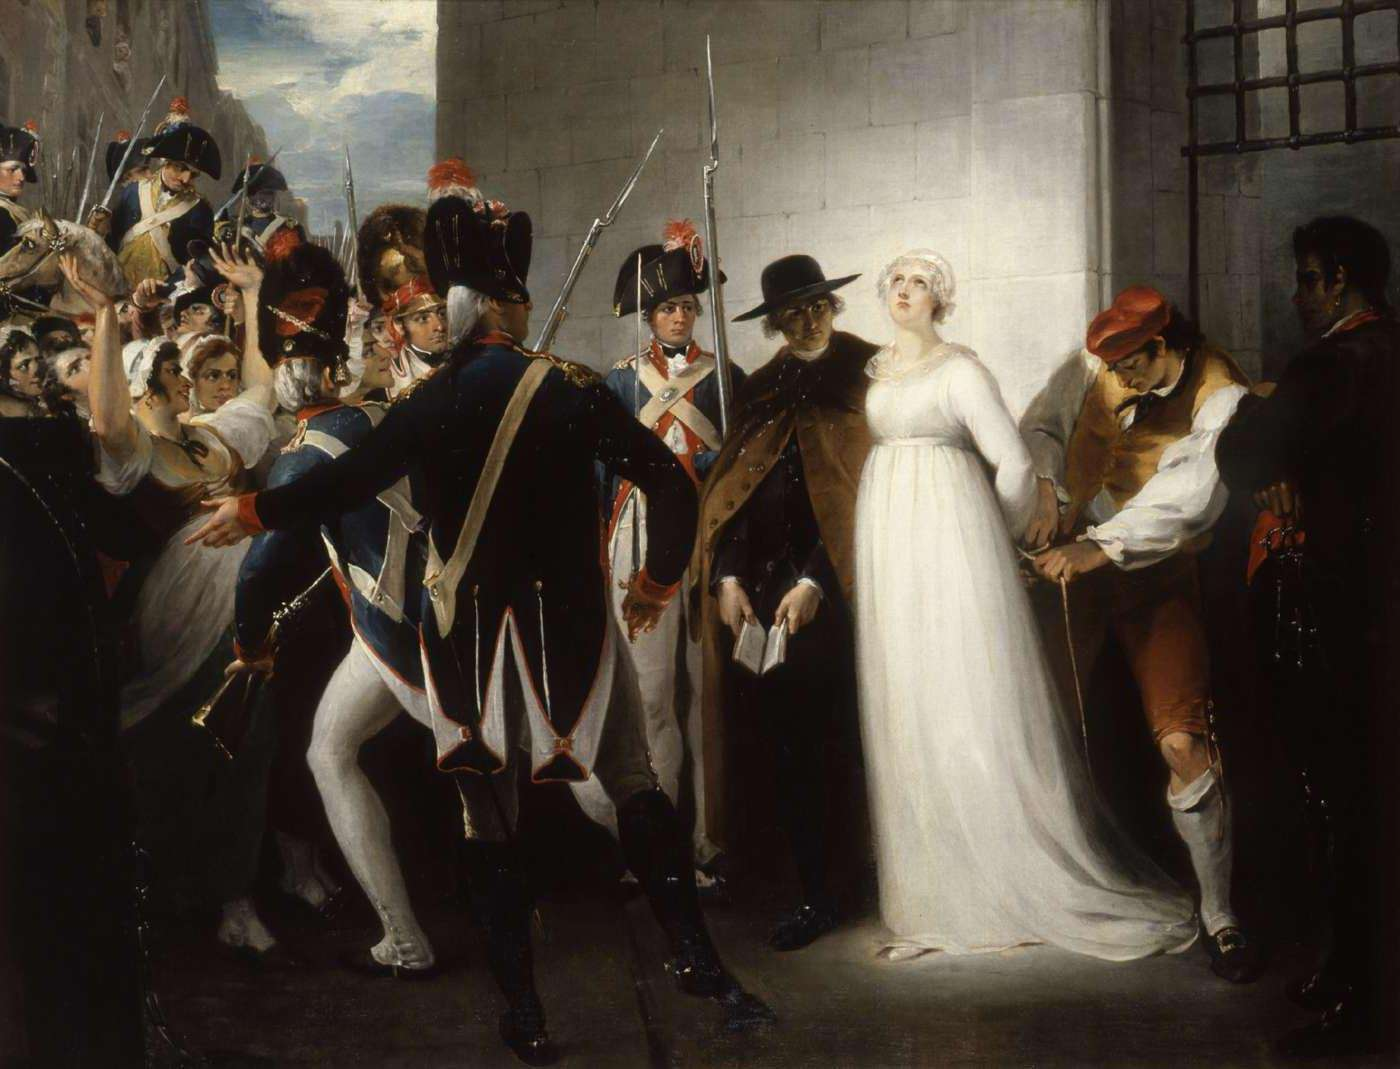 A Tale of Two Cities - the French Revolution, the execution of Marie Antoinette.